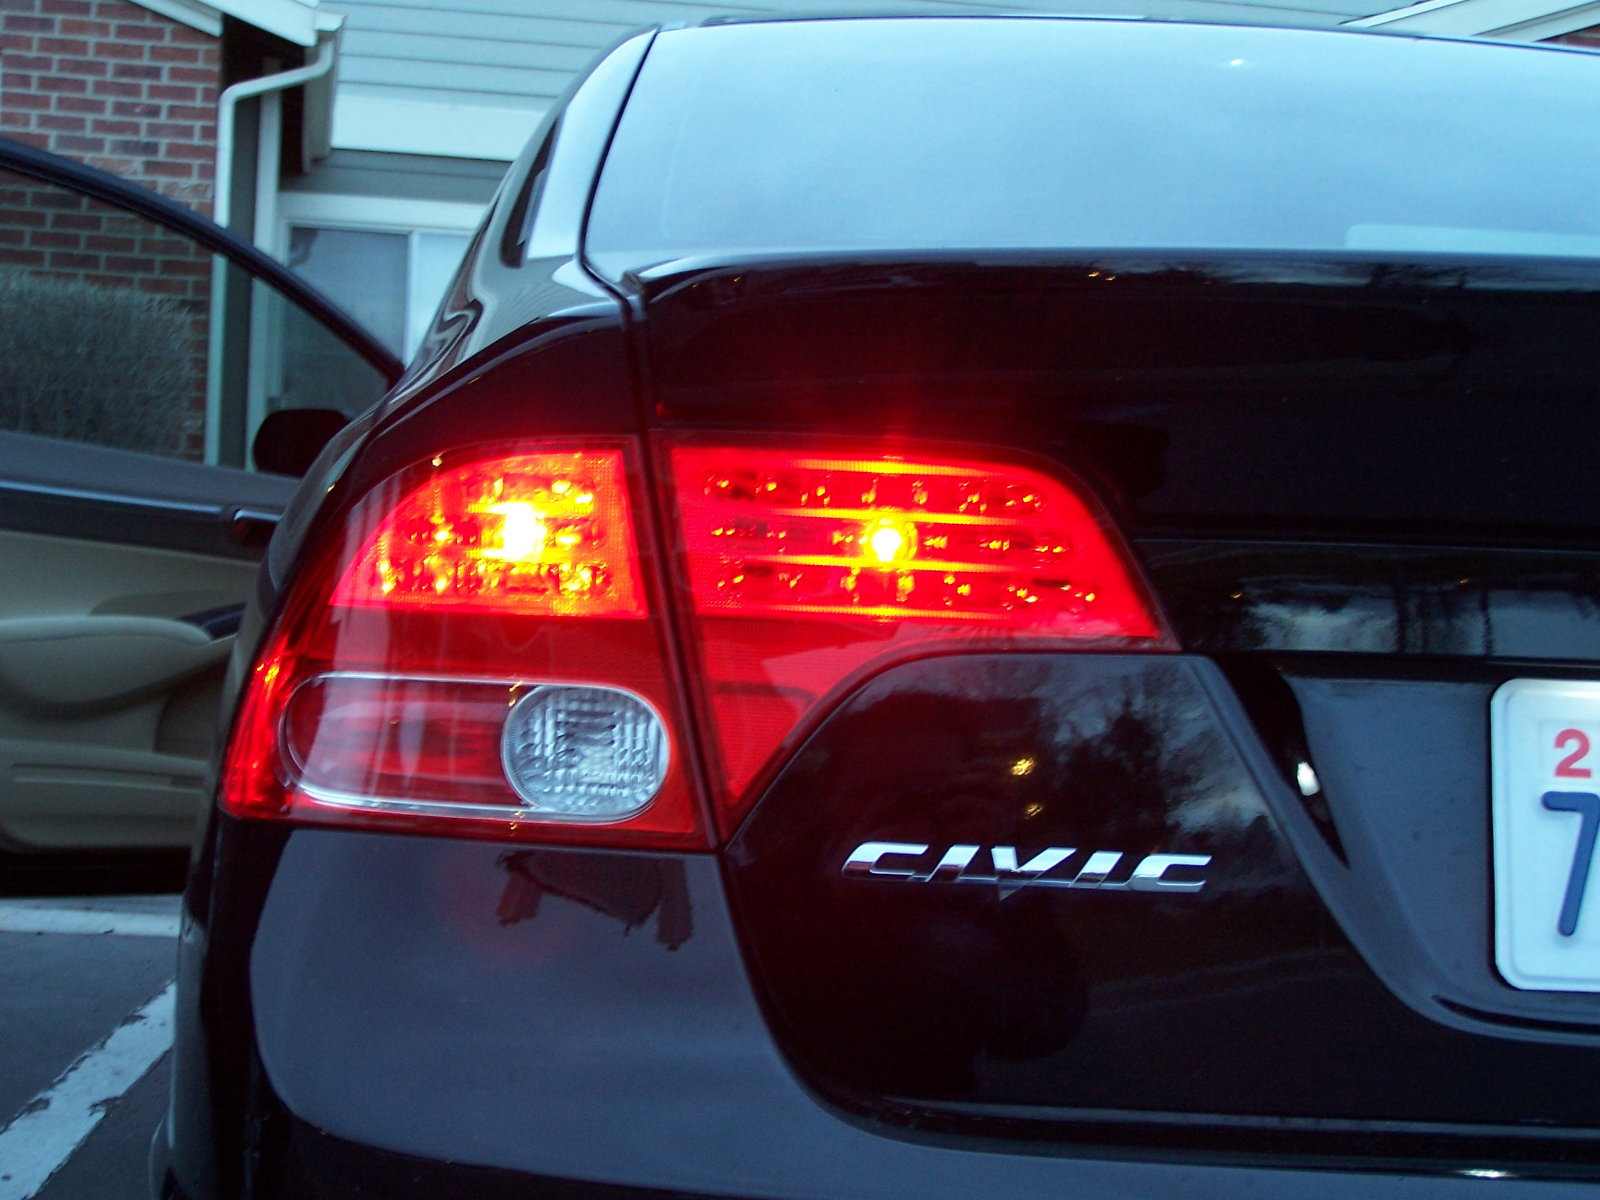 Tail light pic